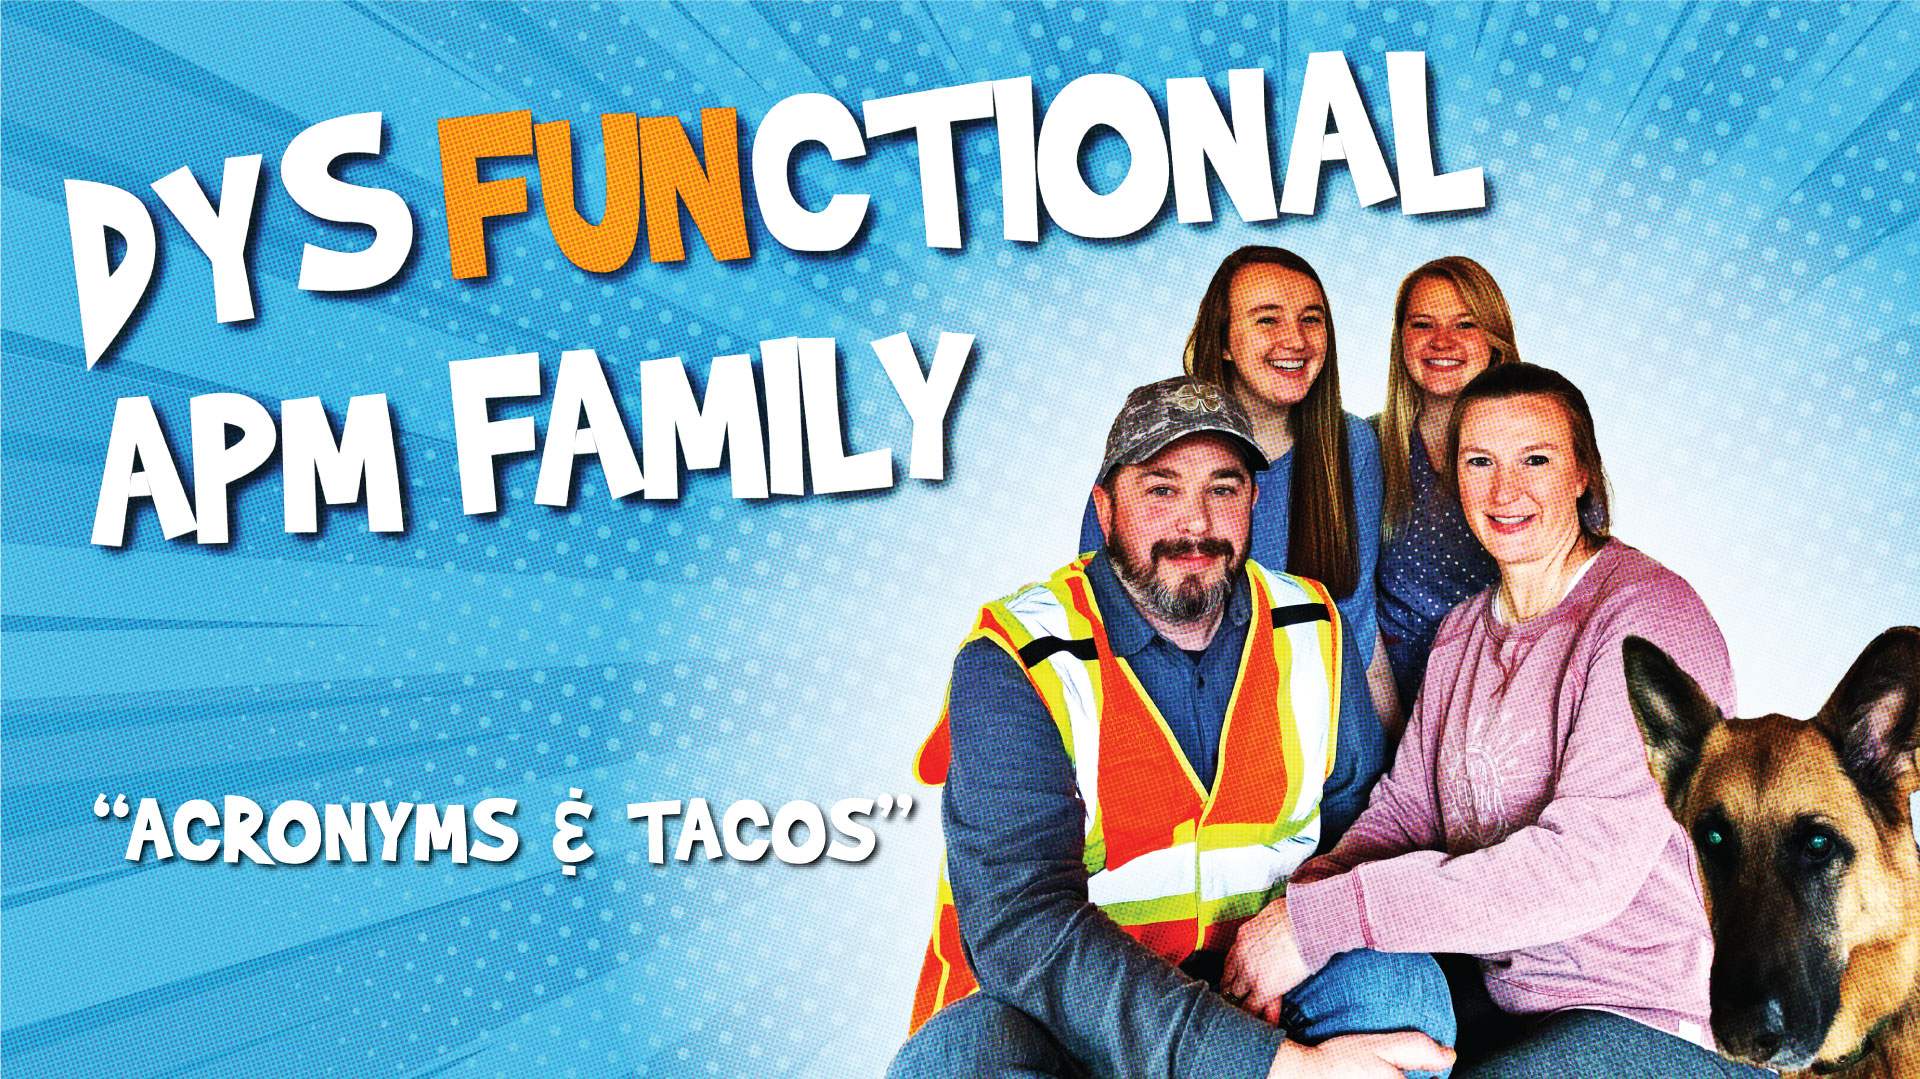 DysFUNctional APM Family - Acronyms & Tacos